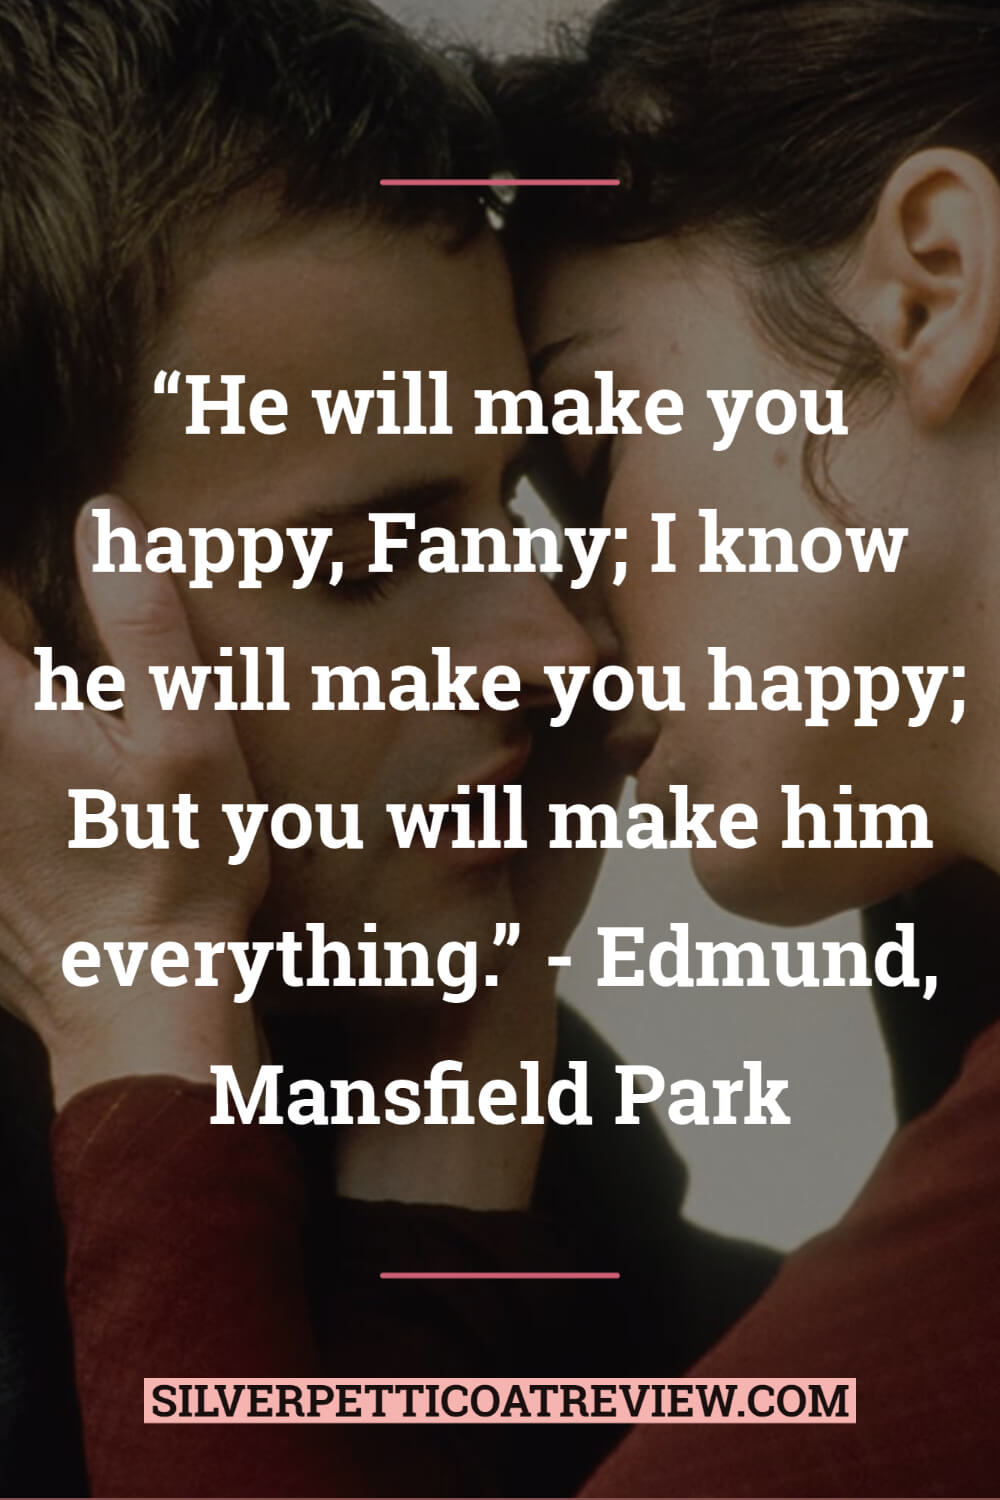 Edmund quote from Mansfield Park; jane austen quotes about love